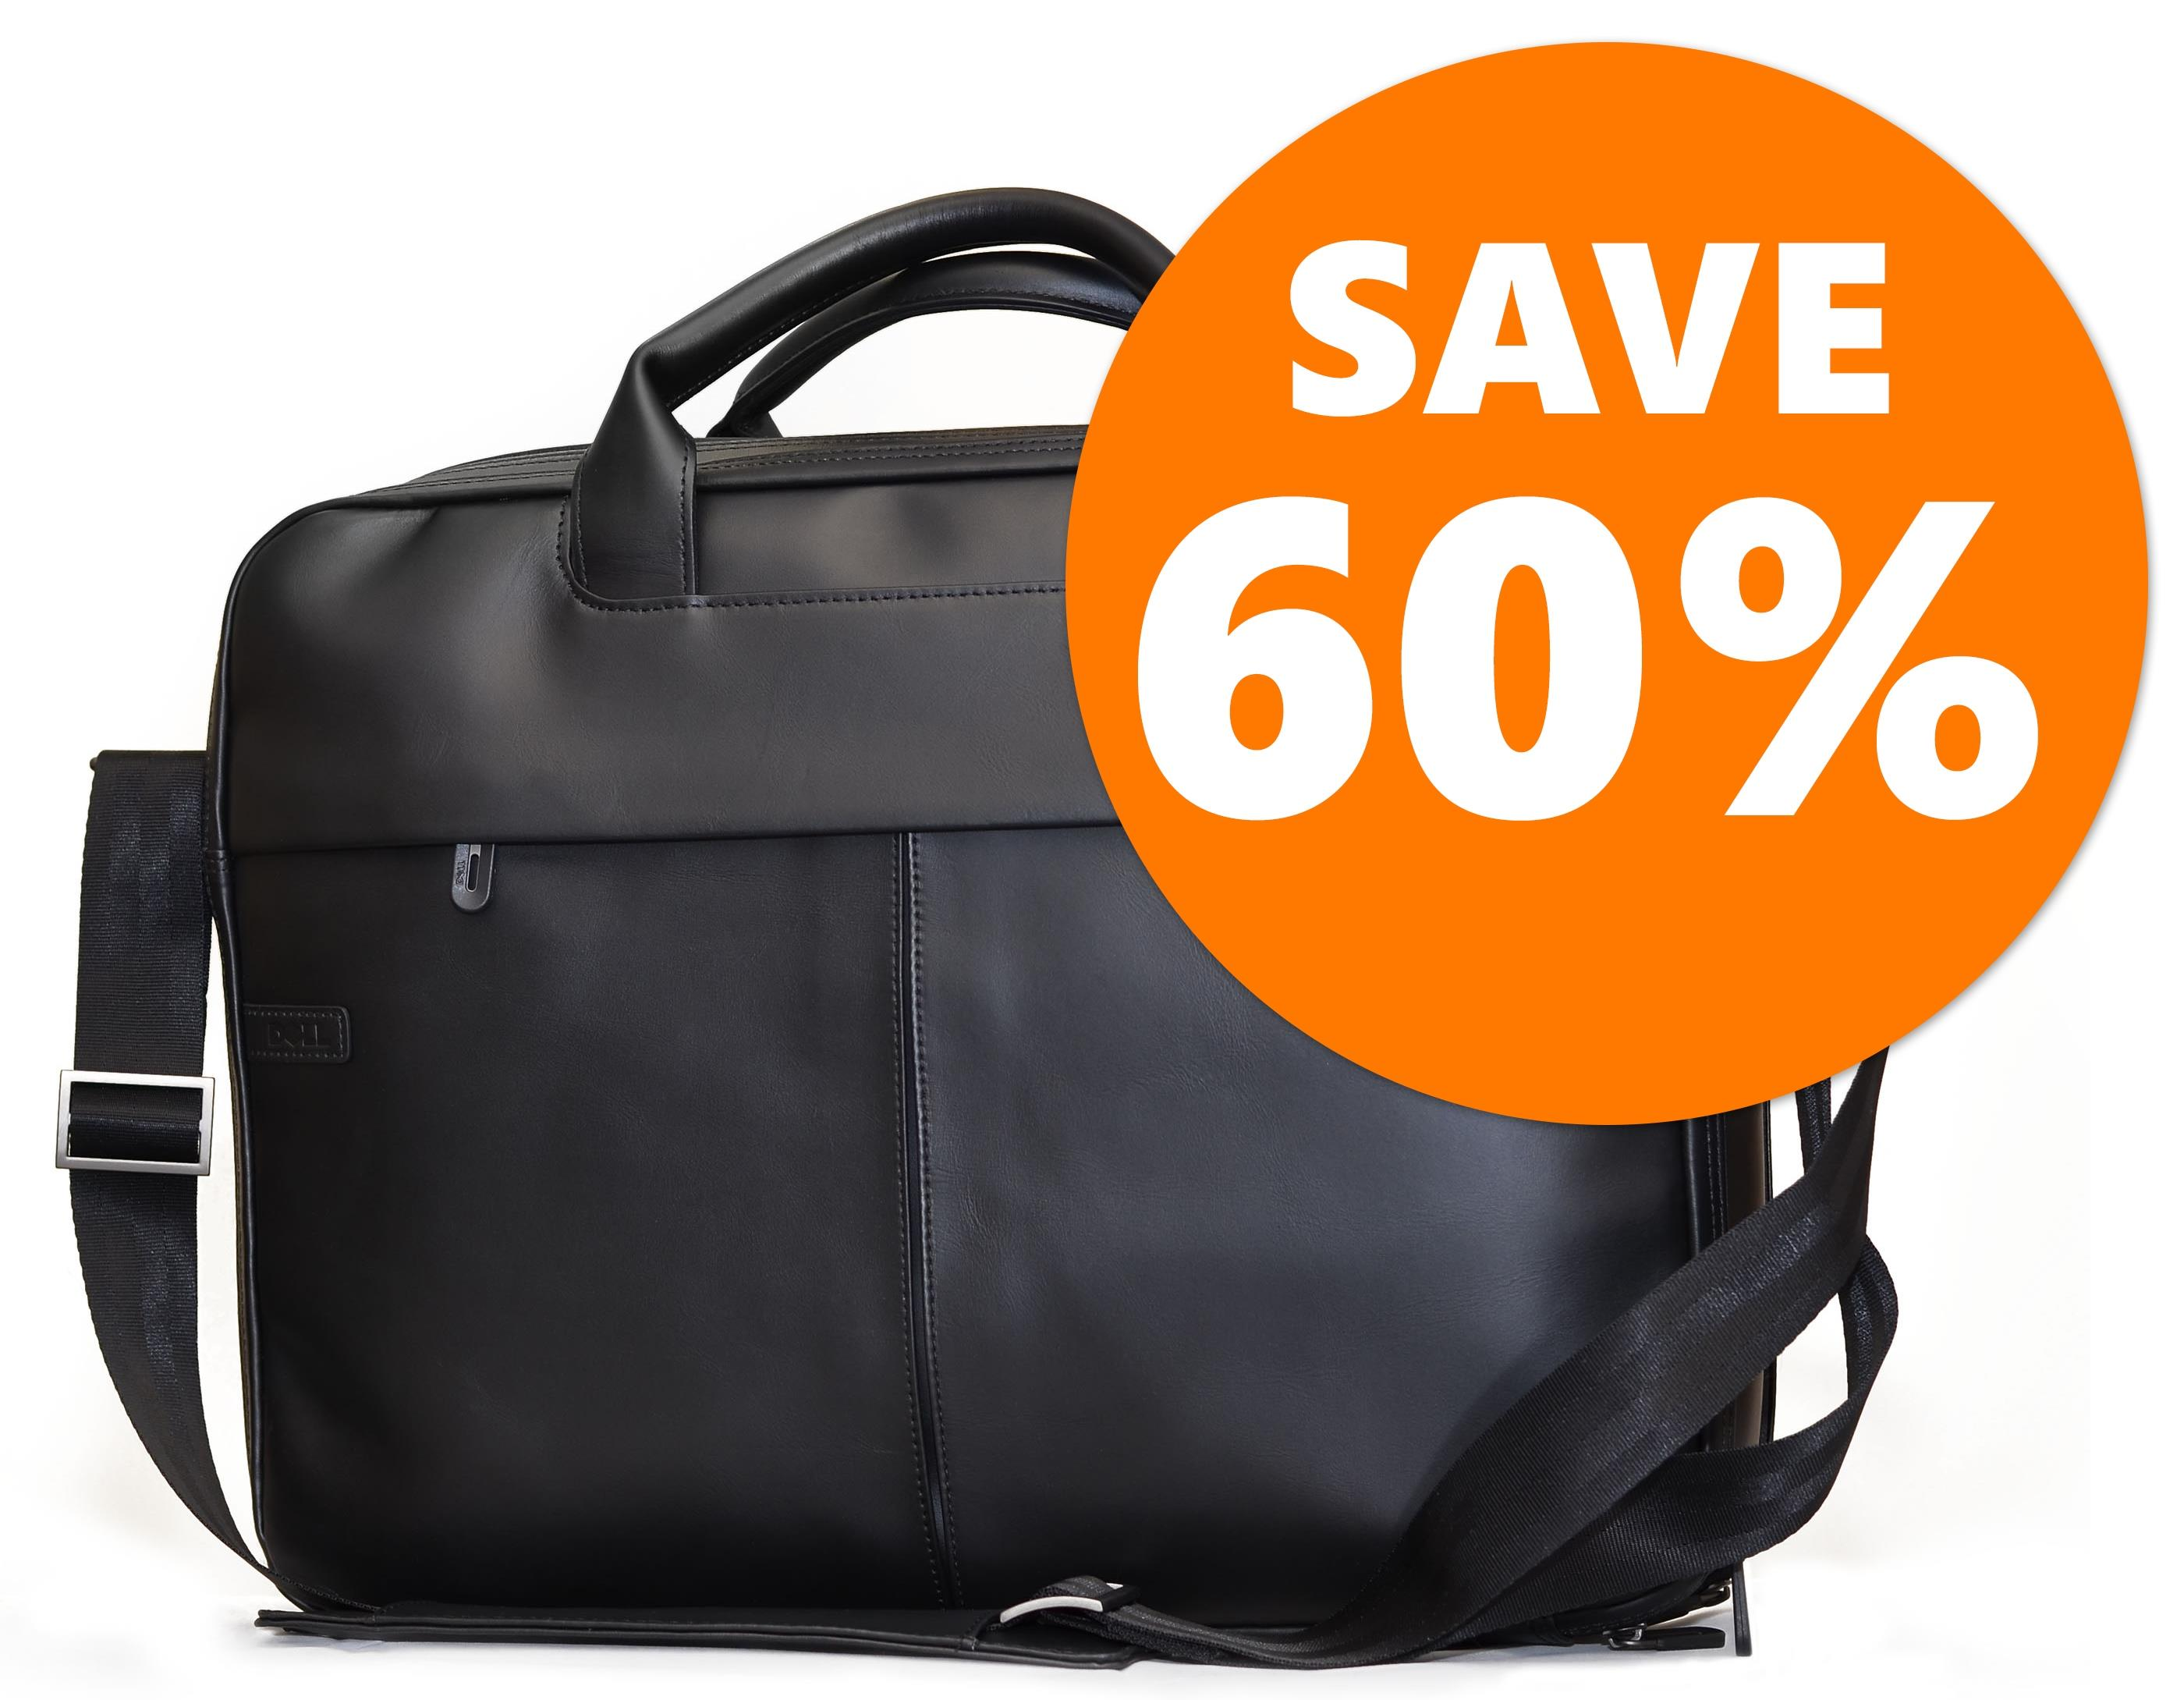 "Soft Leather Executive Laptop Bag made by Targus - Designed for 15.6"" Laptops (suitable for upto 17.3"") RRP £79.99"